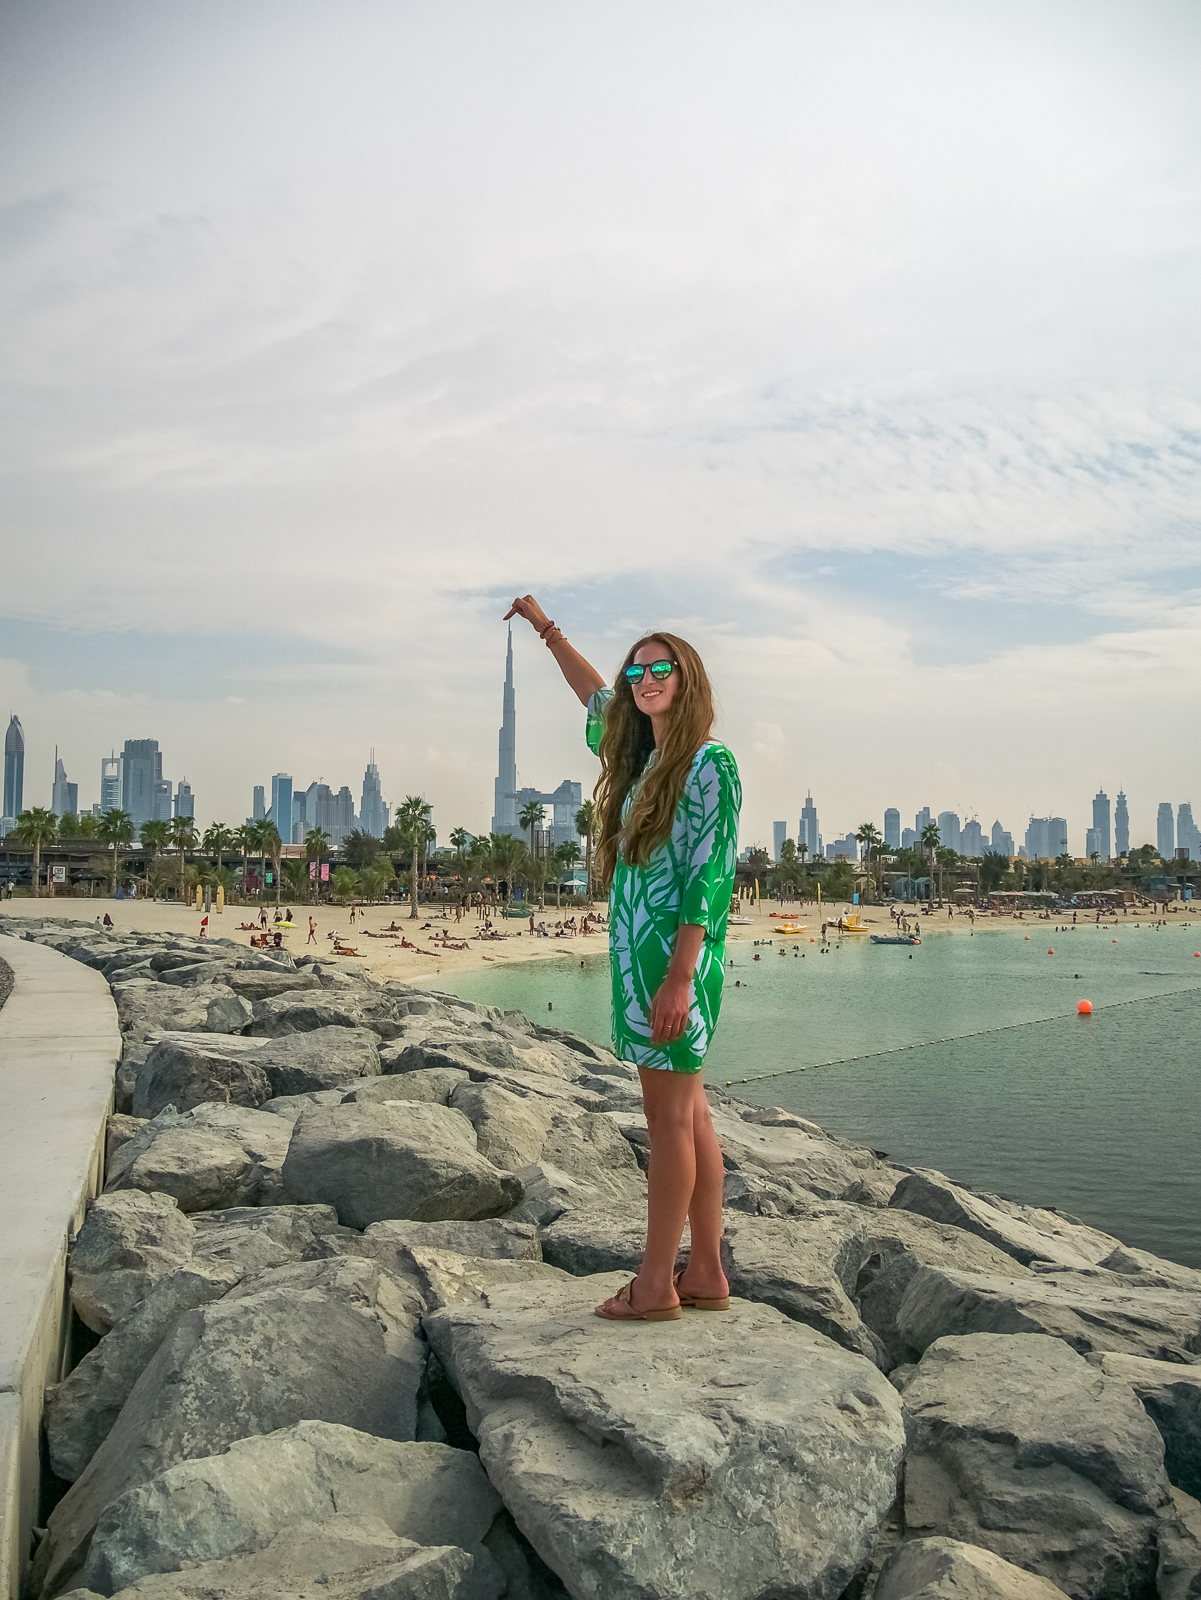 La Mer Beach with view of Burj Khalifa